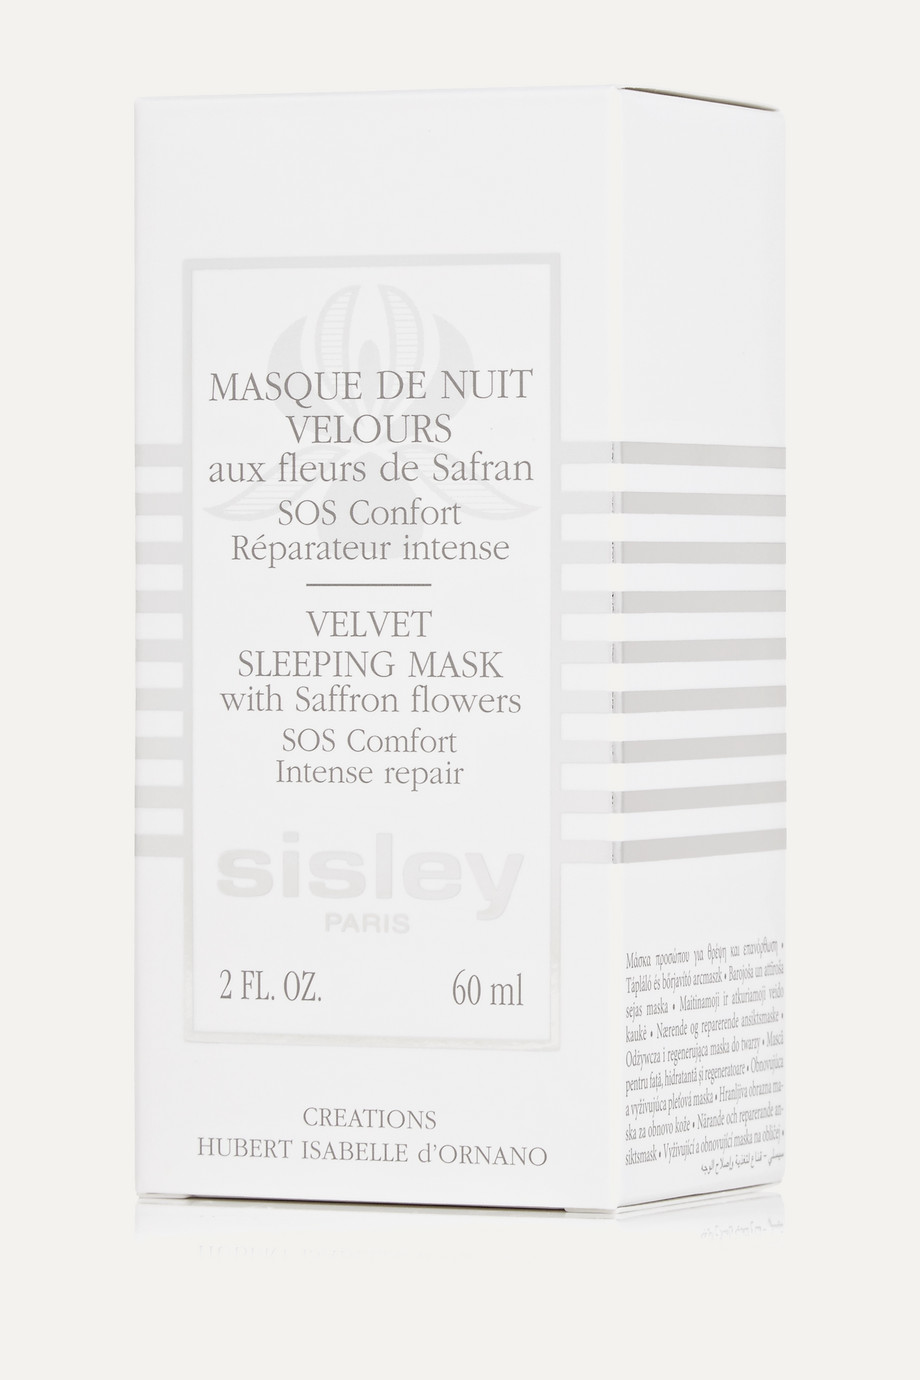 Sisley Velvet Sleeping Mask, 60ml